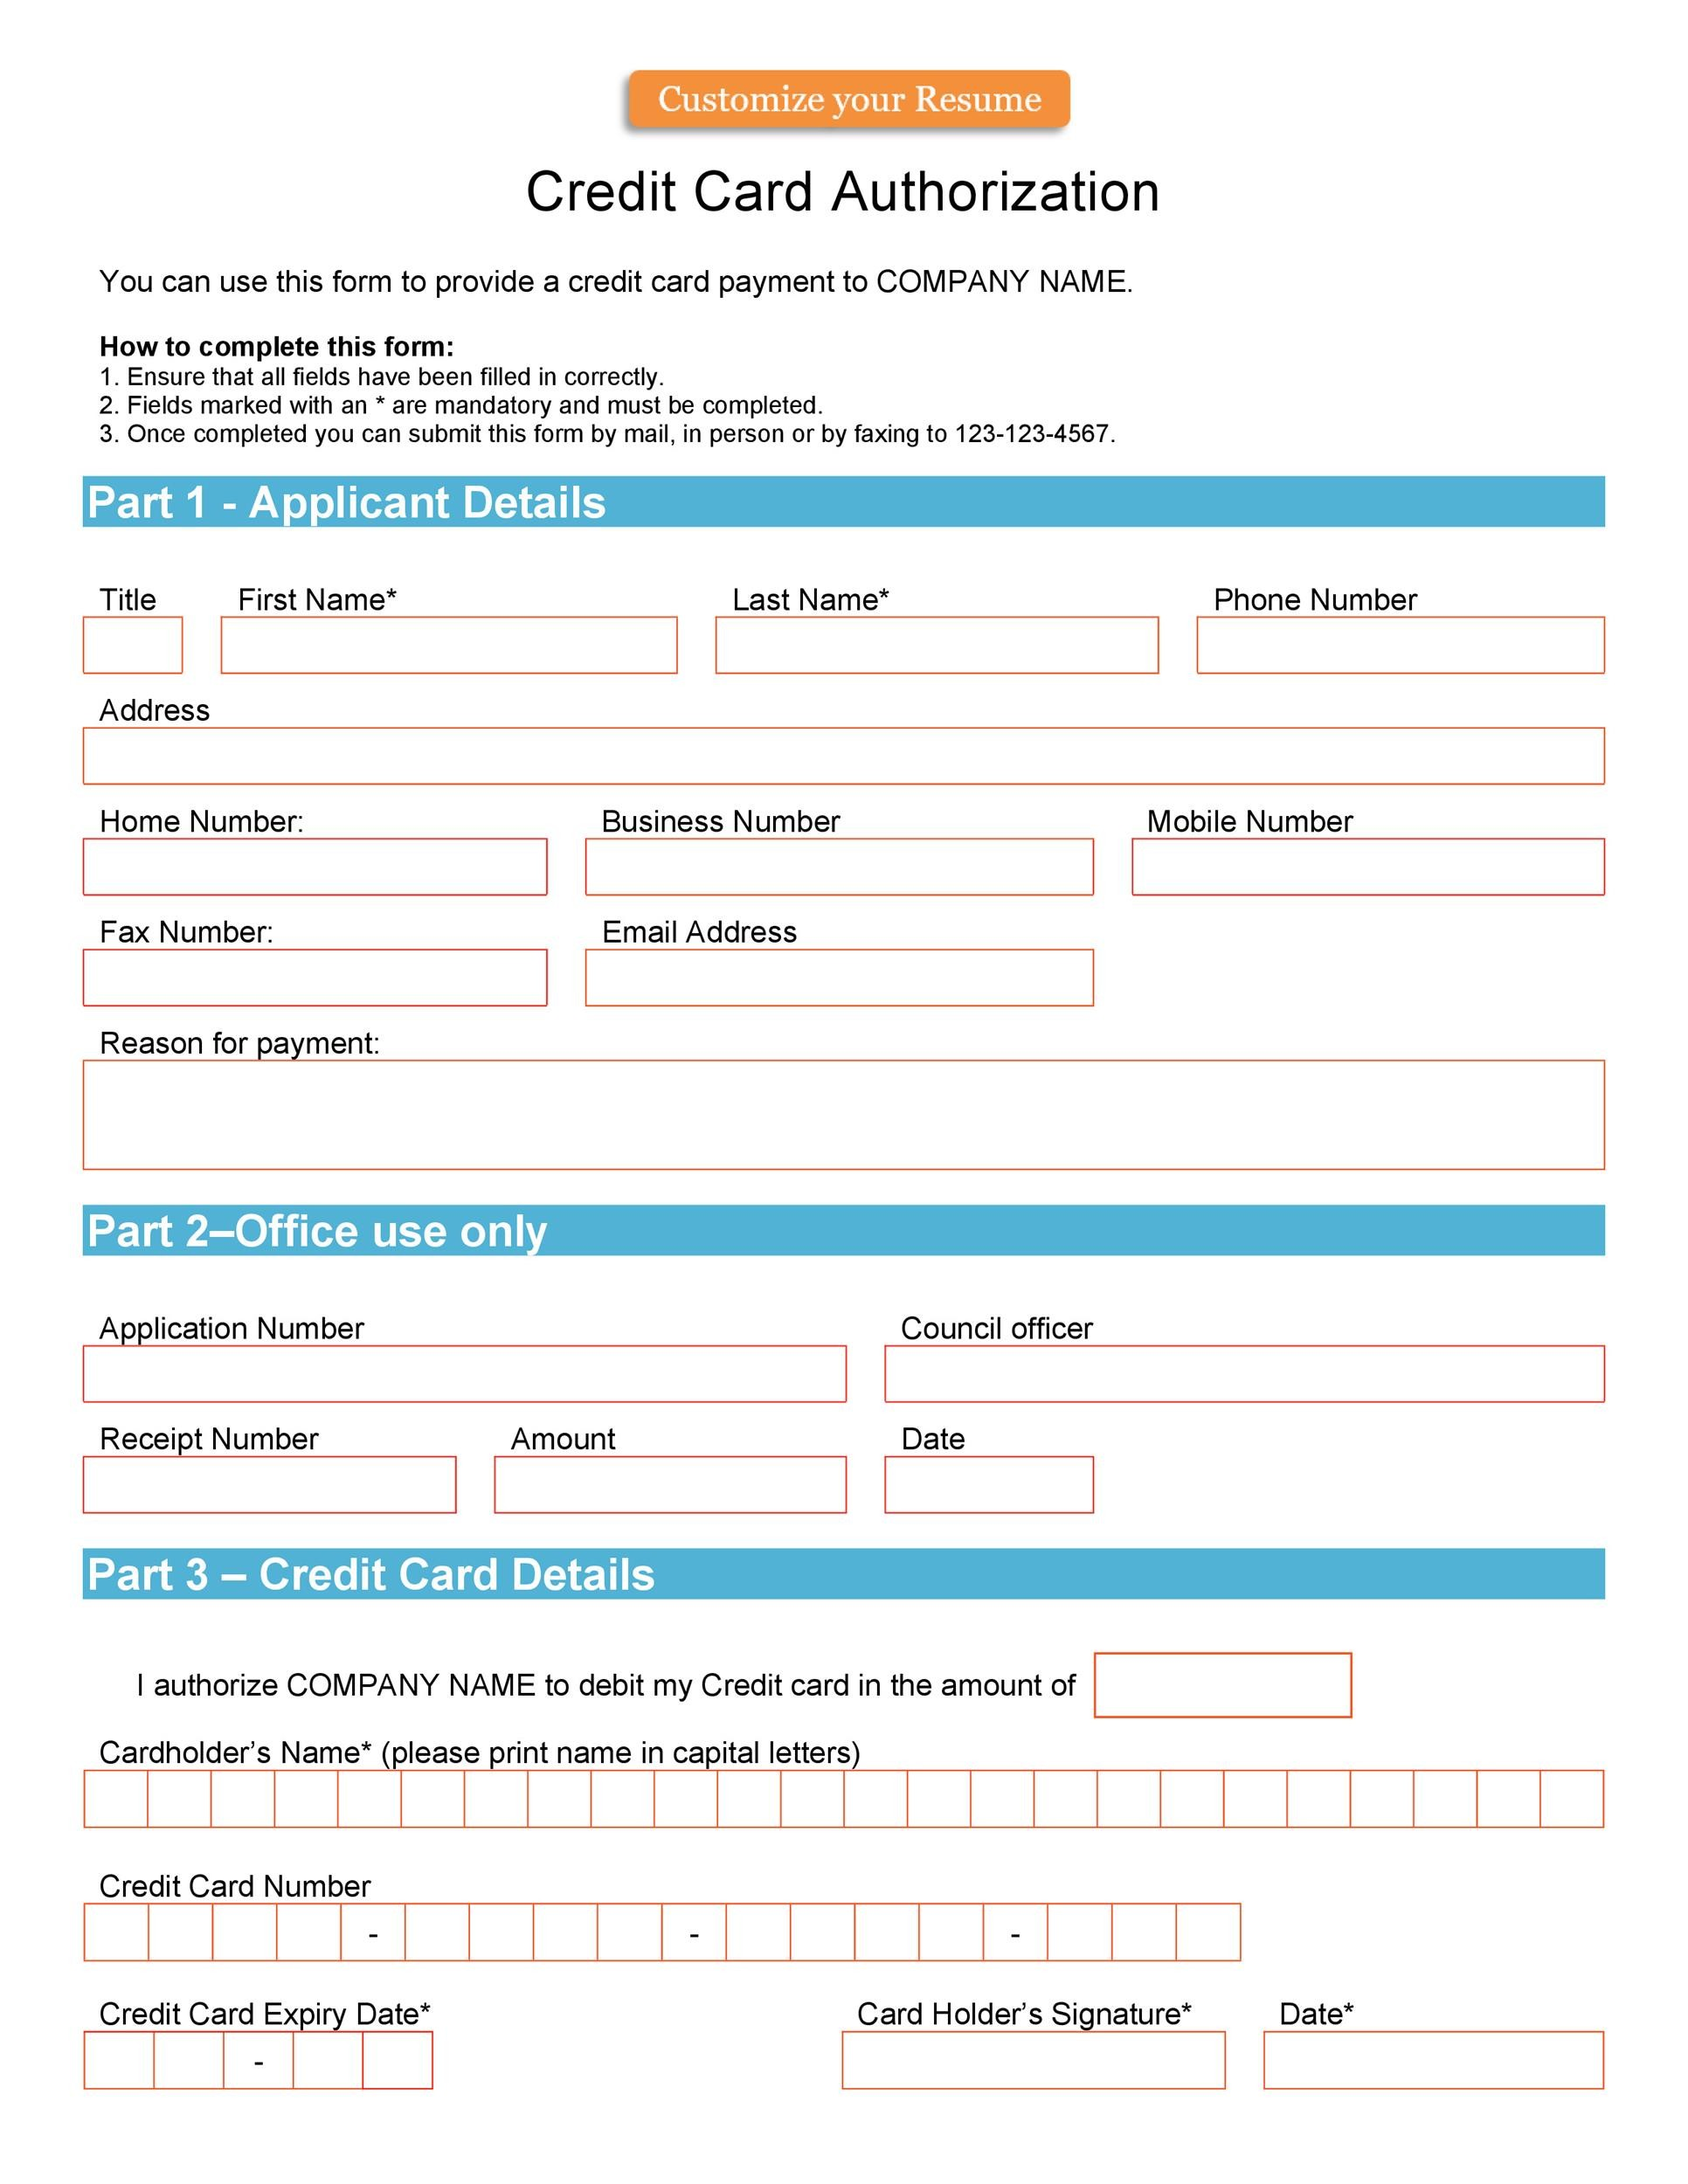 order form with credit card template  5 Credit Card Authorization Forms Templates Ready-to-Use